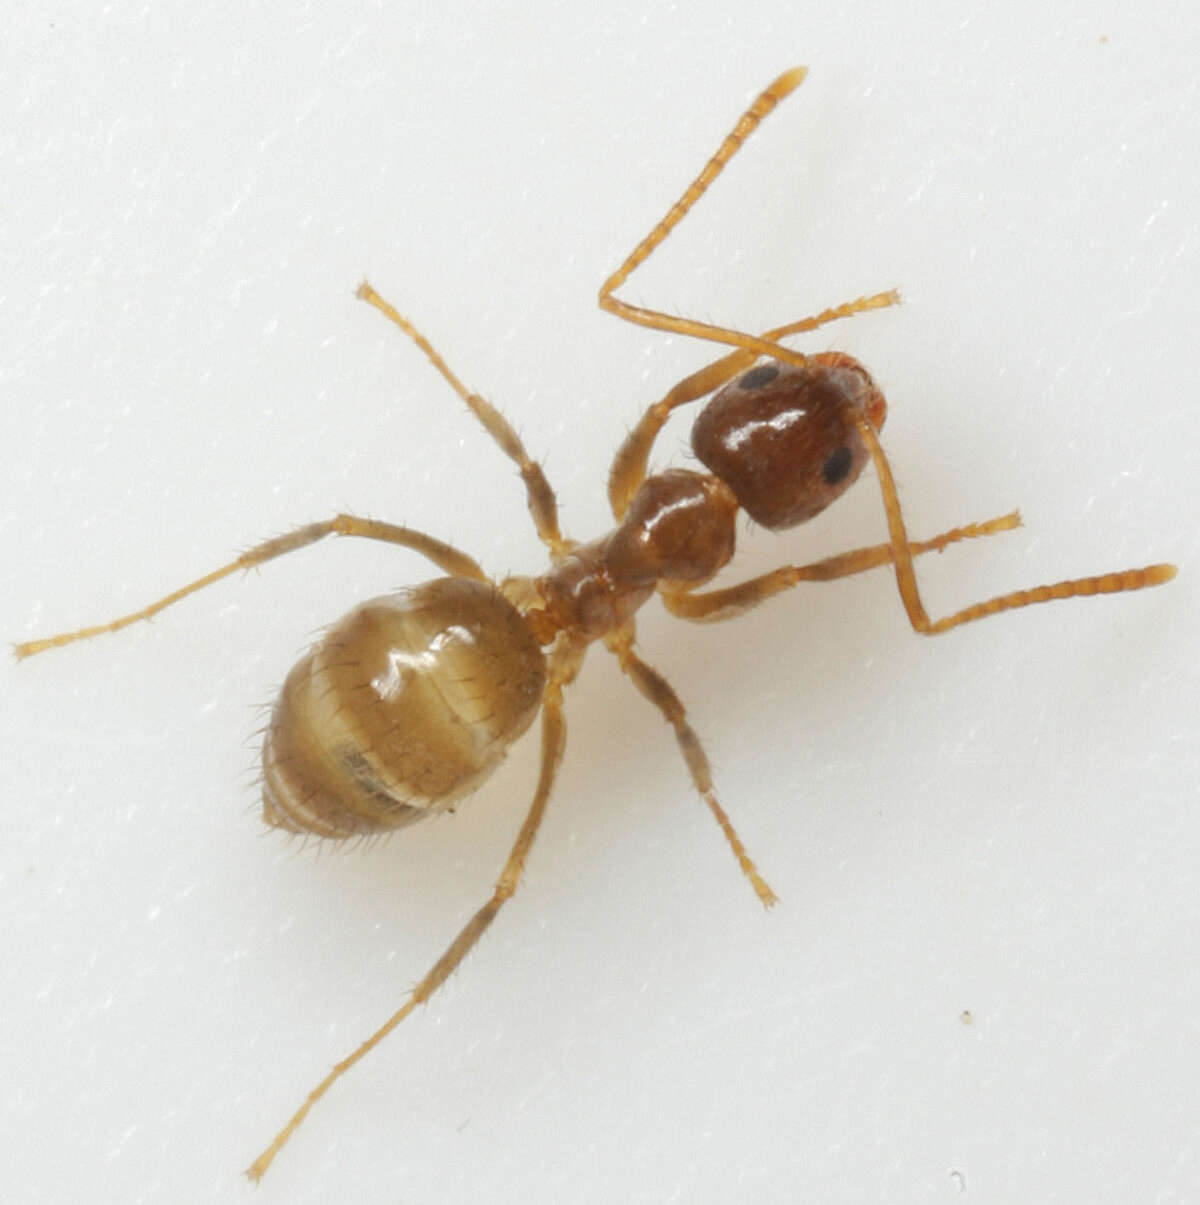 Crazy ants are taking over parts of Texas. Here's a few things to know about these critters. Although small in size, crazy ants colonize by the millions and can wreak havoc on wildlife and personal property.